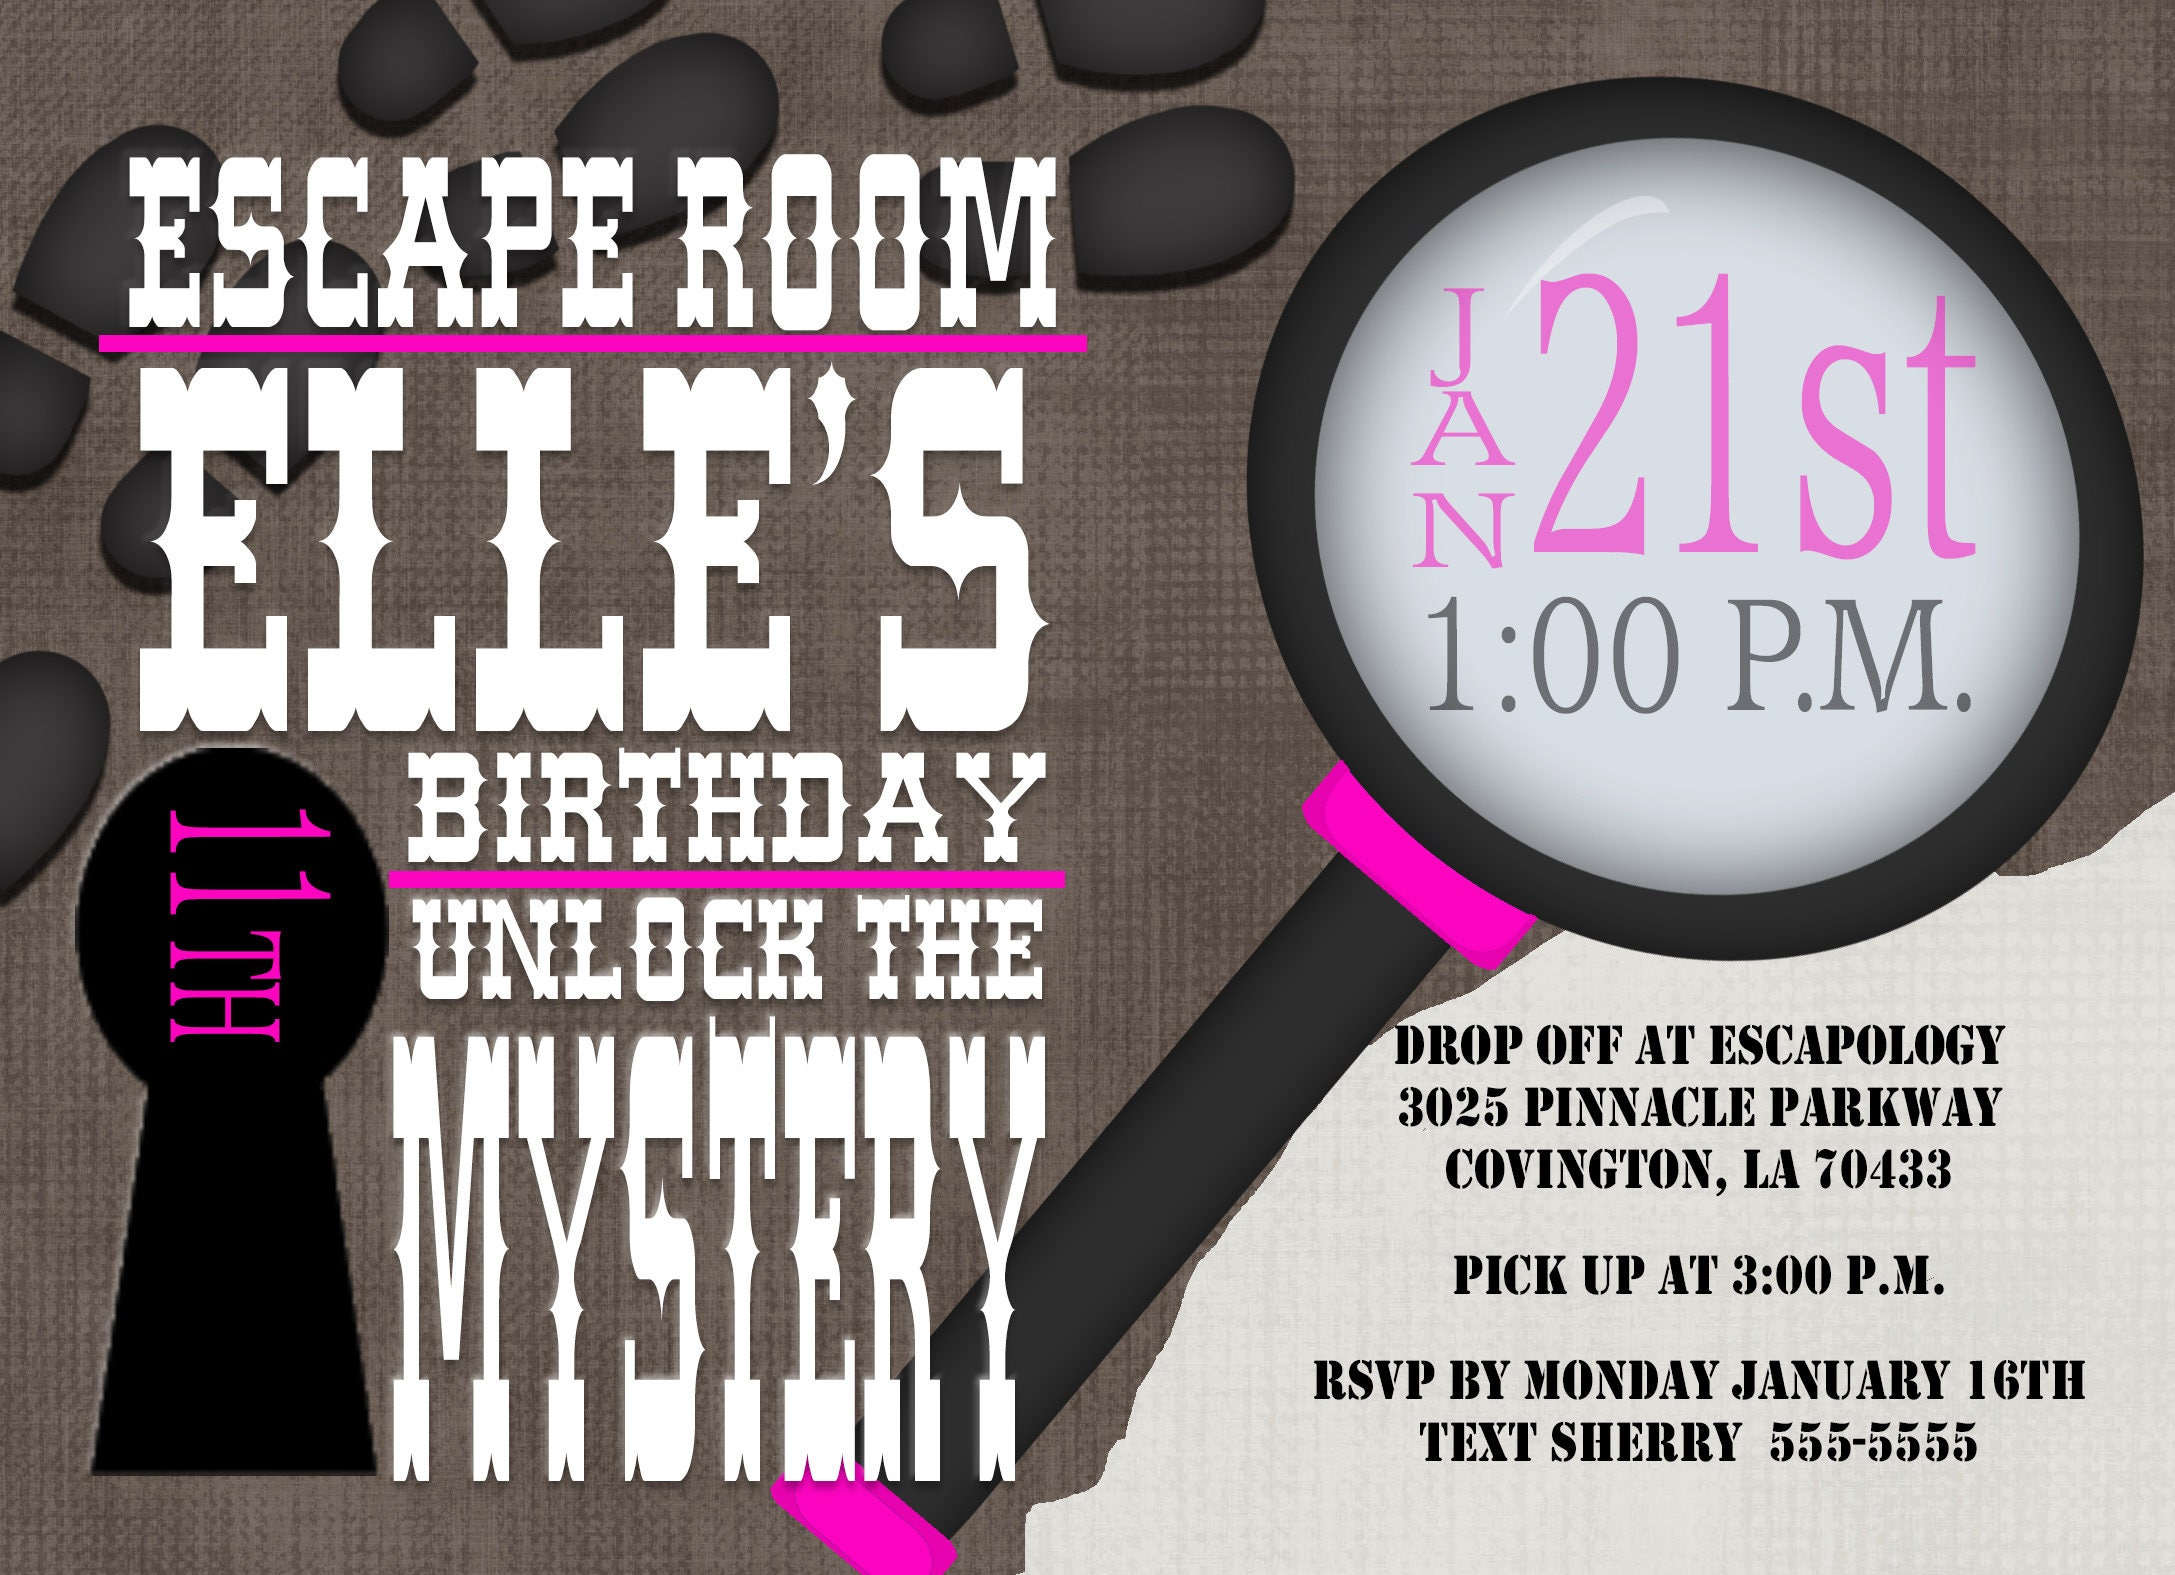 Escape Room Birthday Party Tween Birthday party Teen birthday